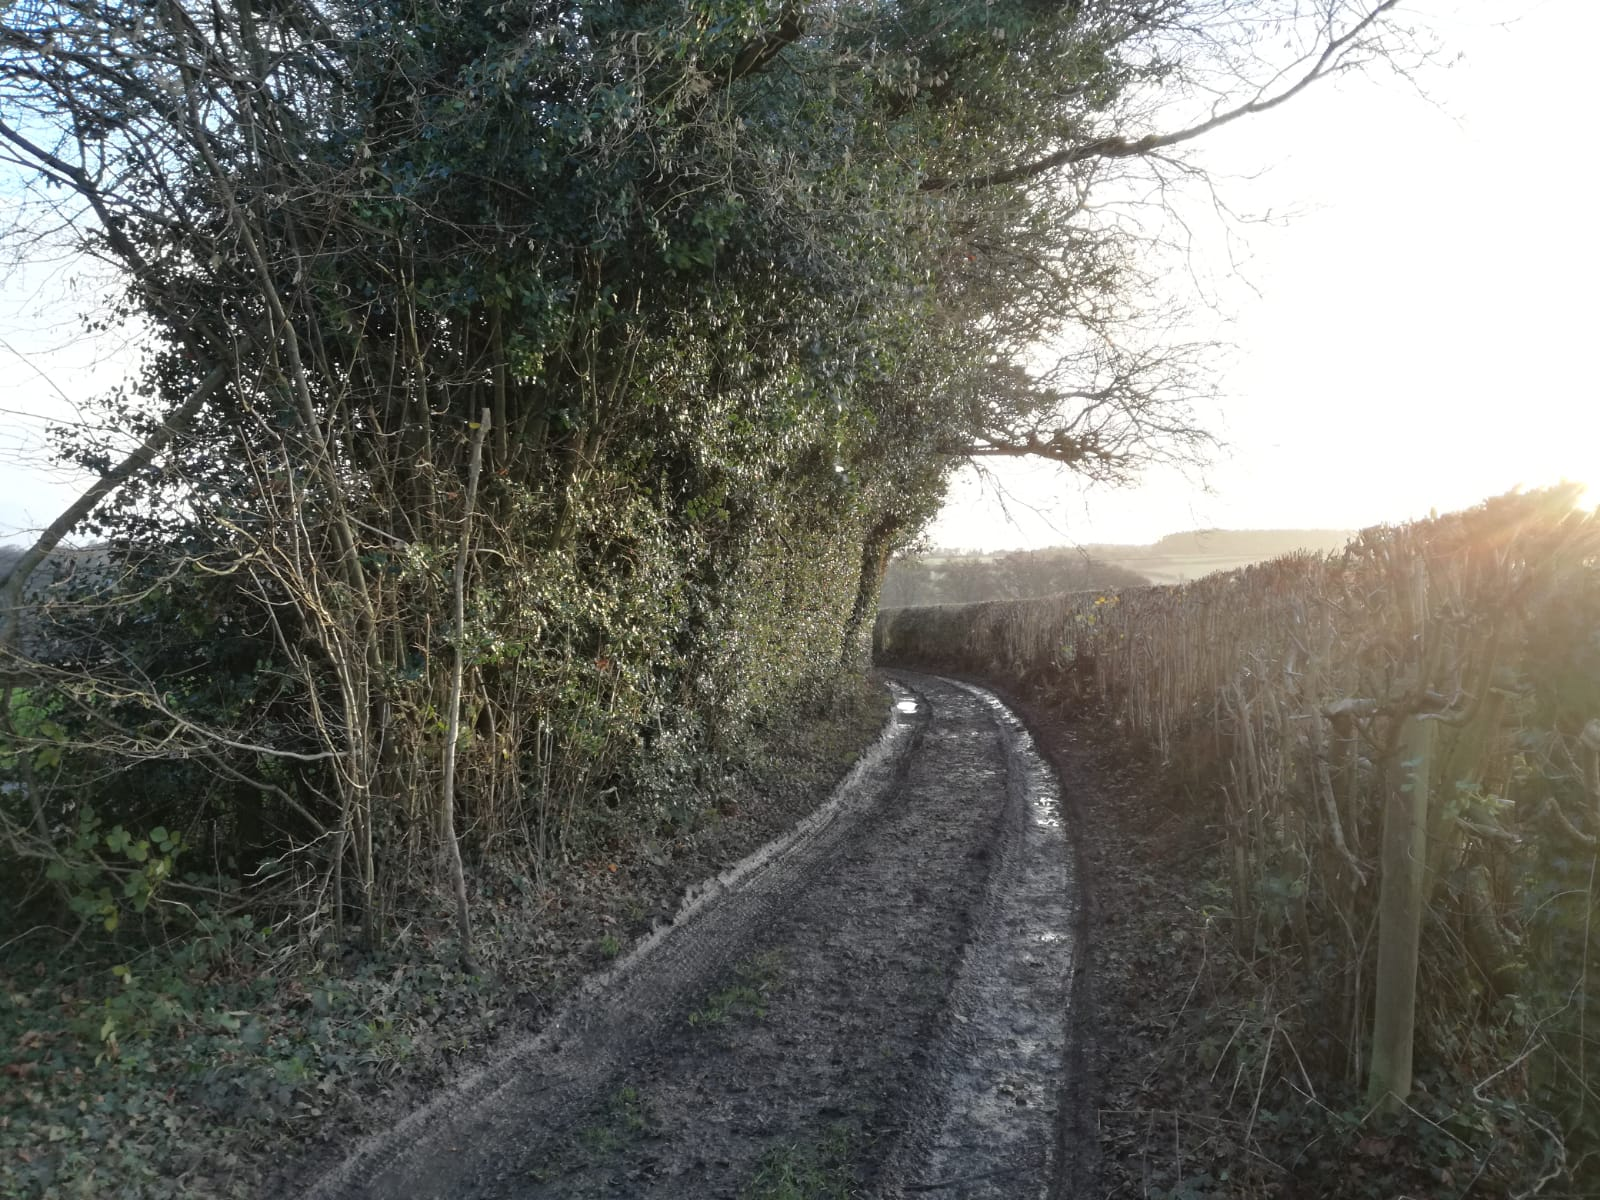 Image of a muddy lane with trees one side and a hedge the other